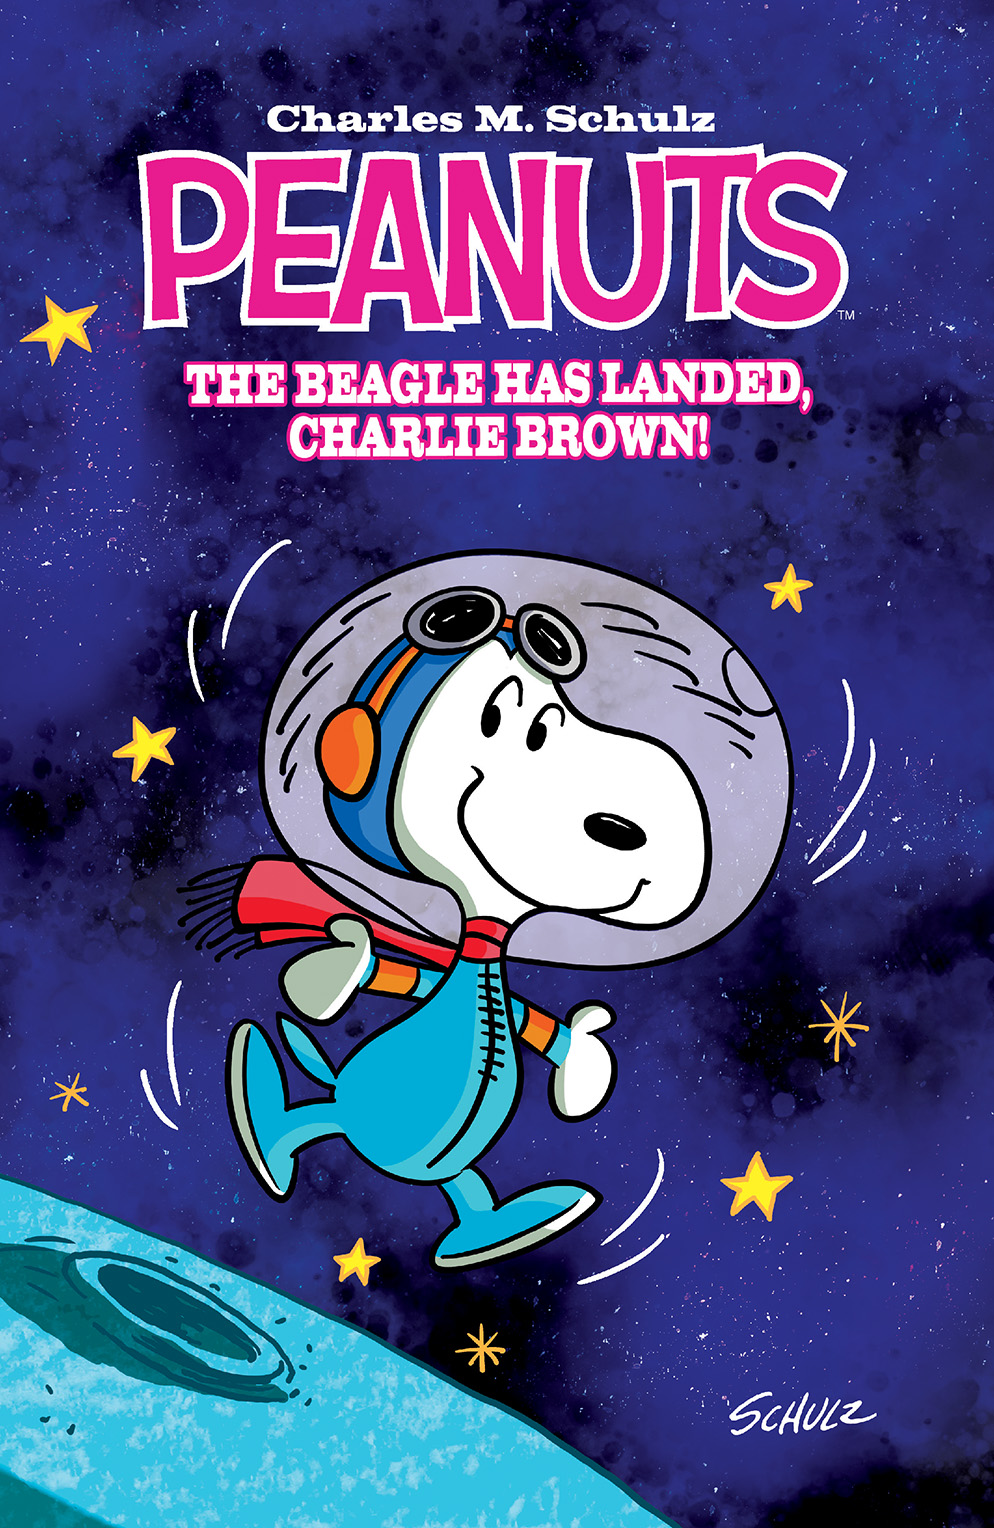 PEANUTS: THE BEAGLE HAS LANDED, CHARLIE BROWN OGN TP Cover by Bob Scott